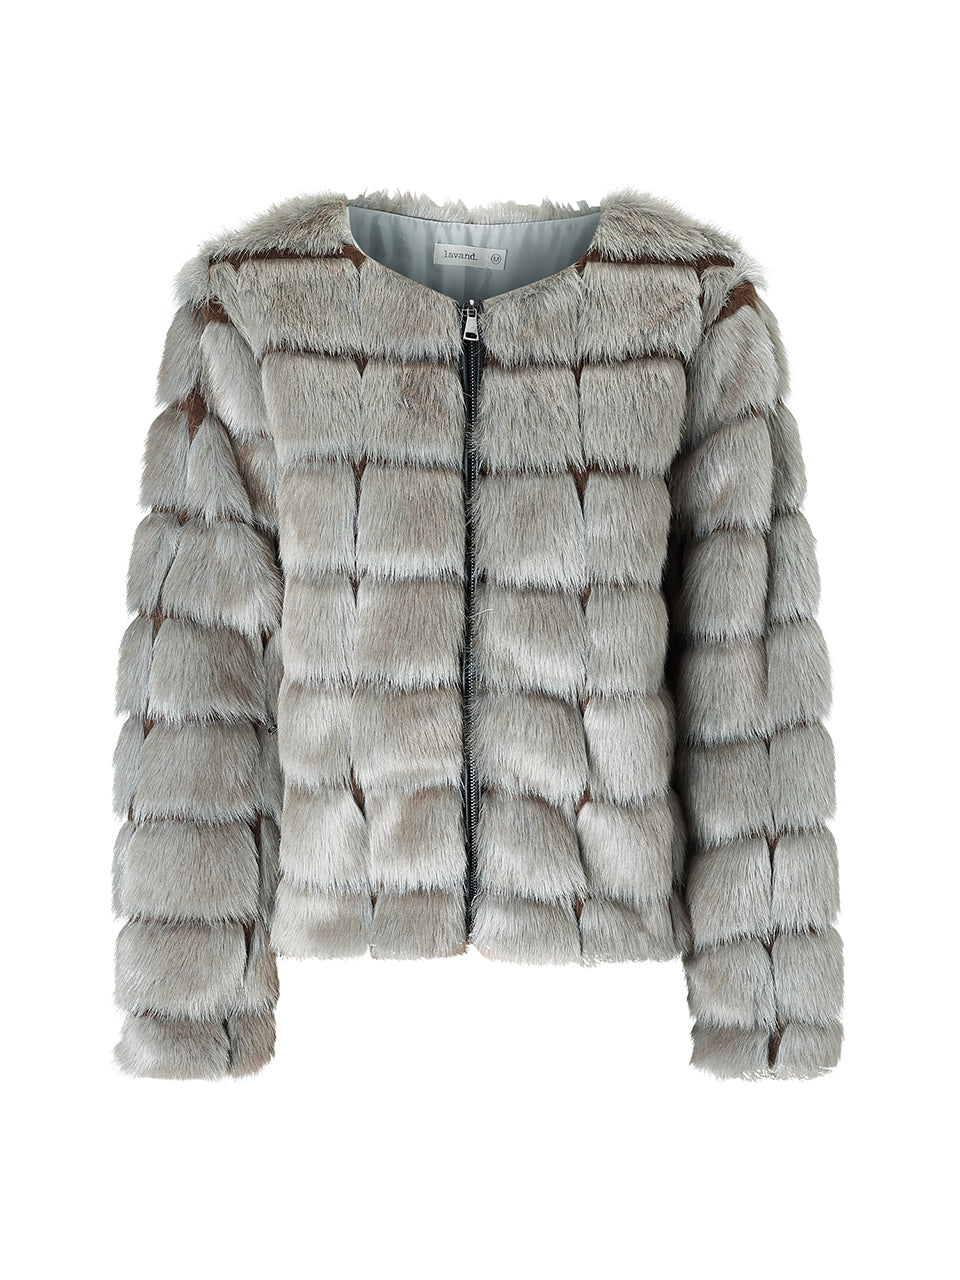 Lavand Grey Faux Fur Jacket